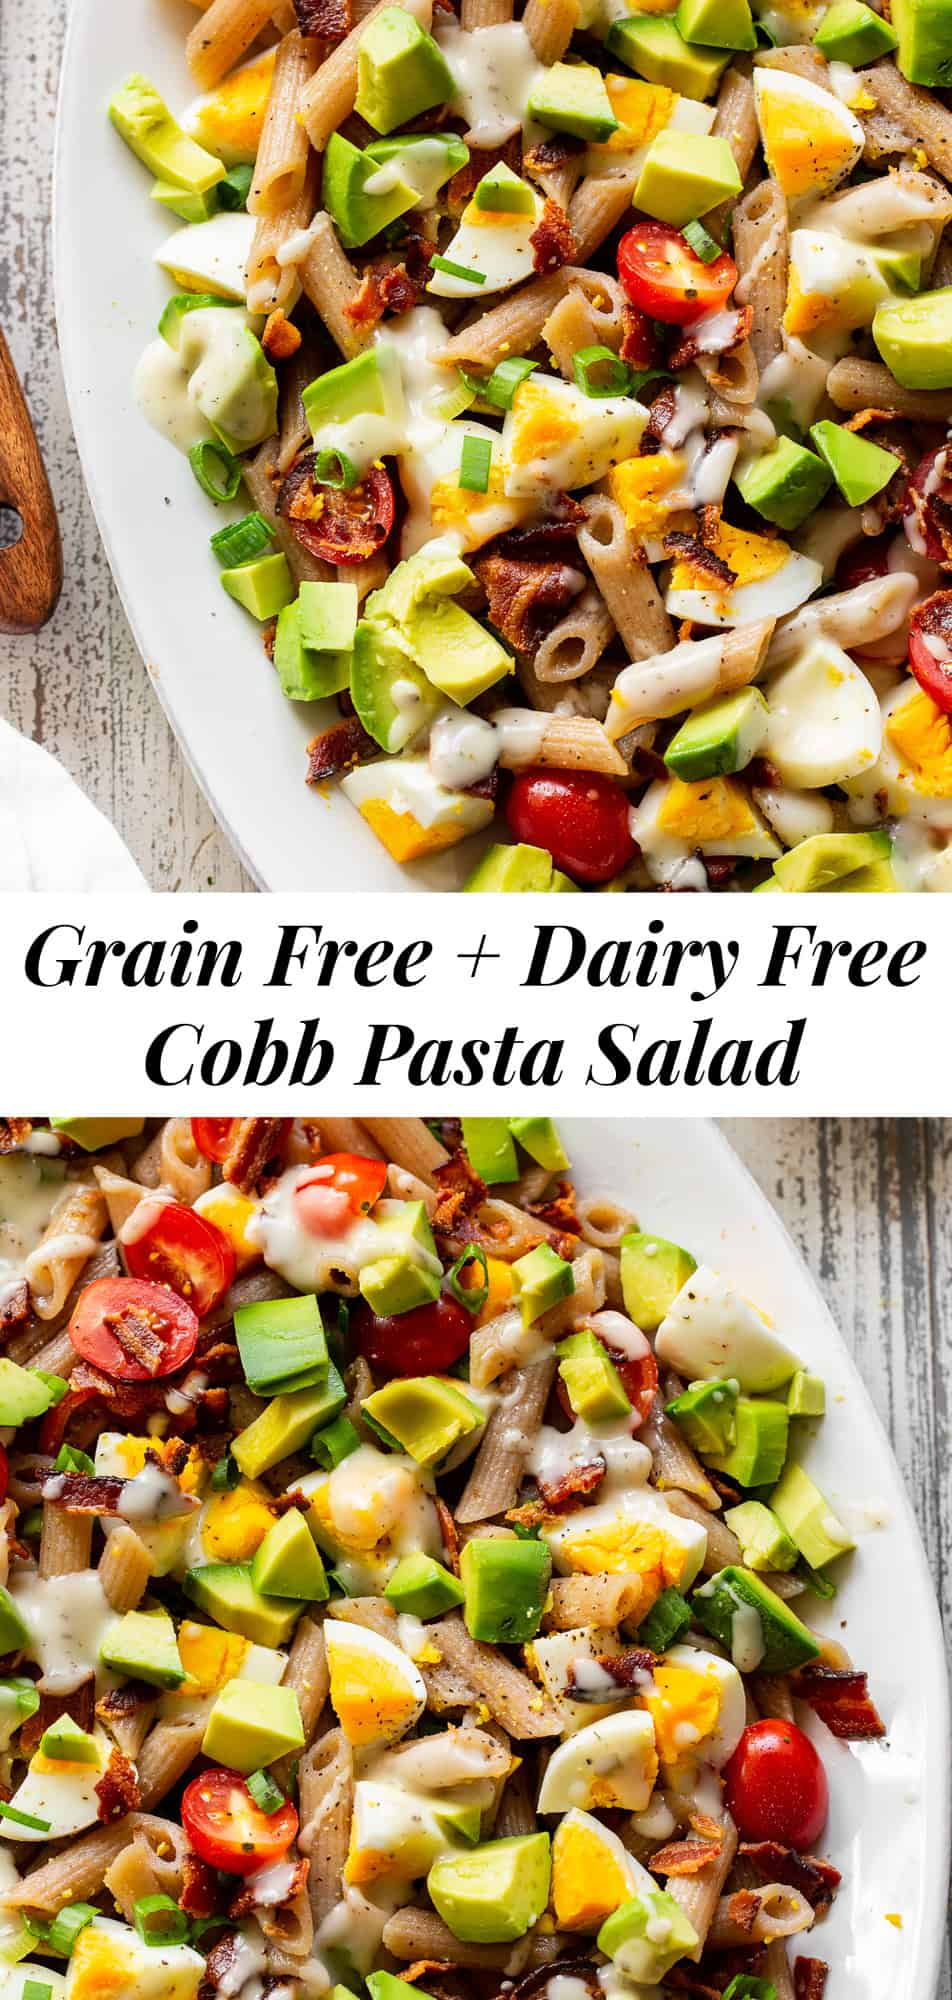 This Cobb Pasta Salad has all the goodies and no one will guess it's paleo! Bacon, eggs, tomatoes, green onions and avocados are tossed with grain free pasta and drizzled with dairy free ranch dressing. A favorite for BBQ and picnic season, this salad is a great healthy side dish or a main course! #paleo #cleaneating #grainfree